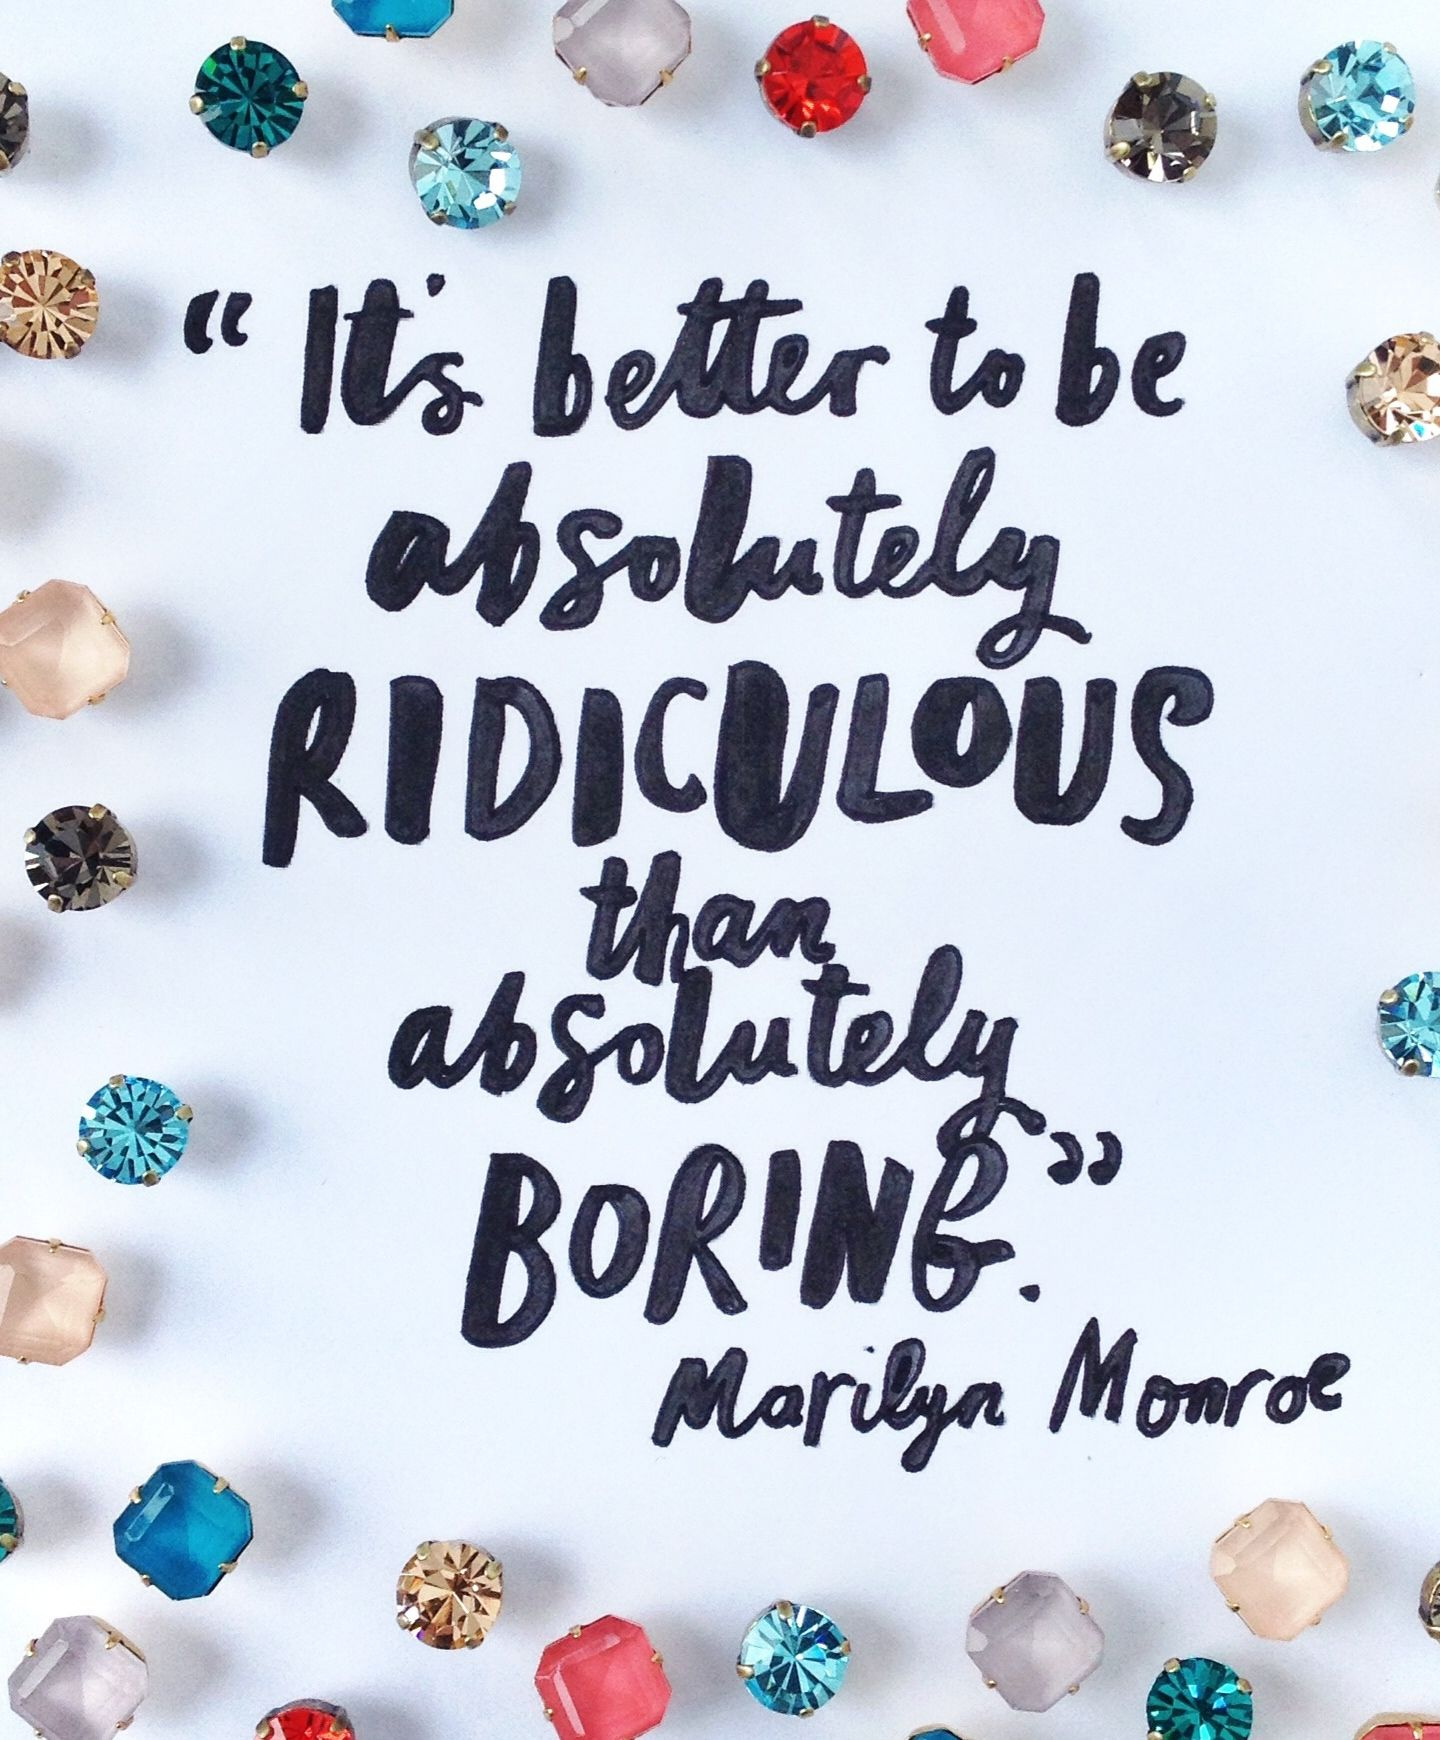 be ridiculous. | Cute quotes, Words quotes, Amazing quotes